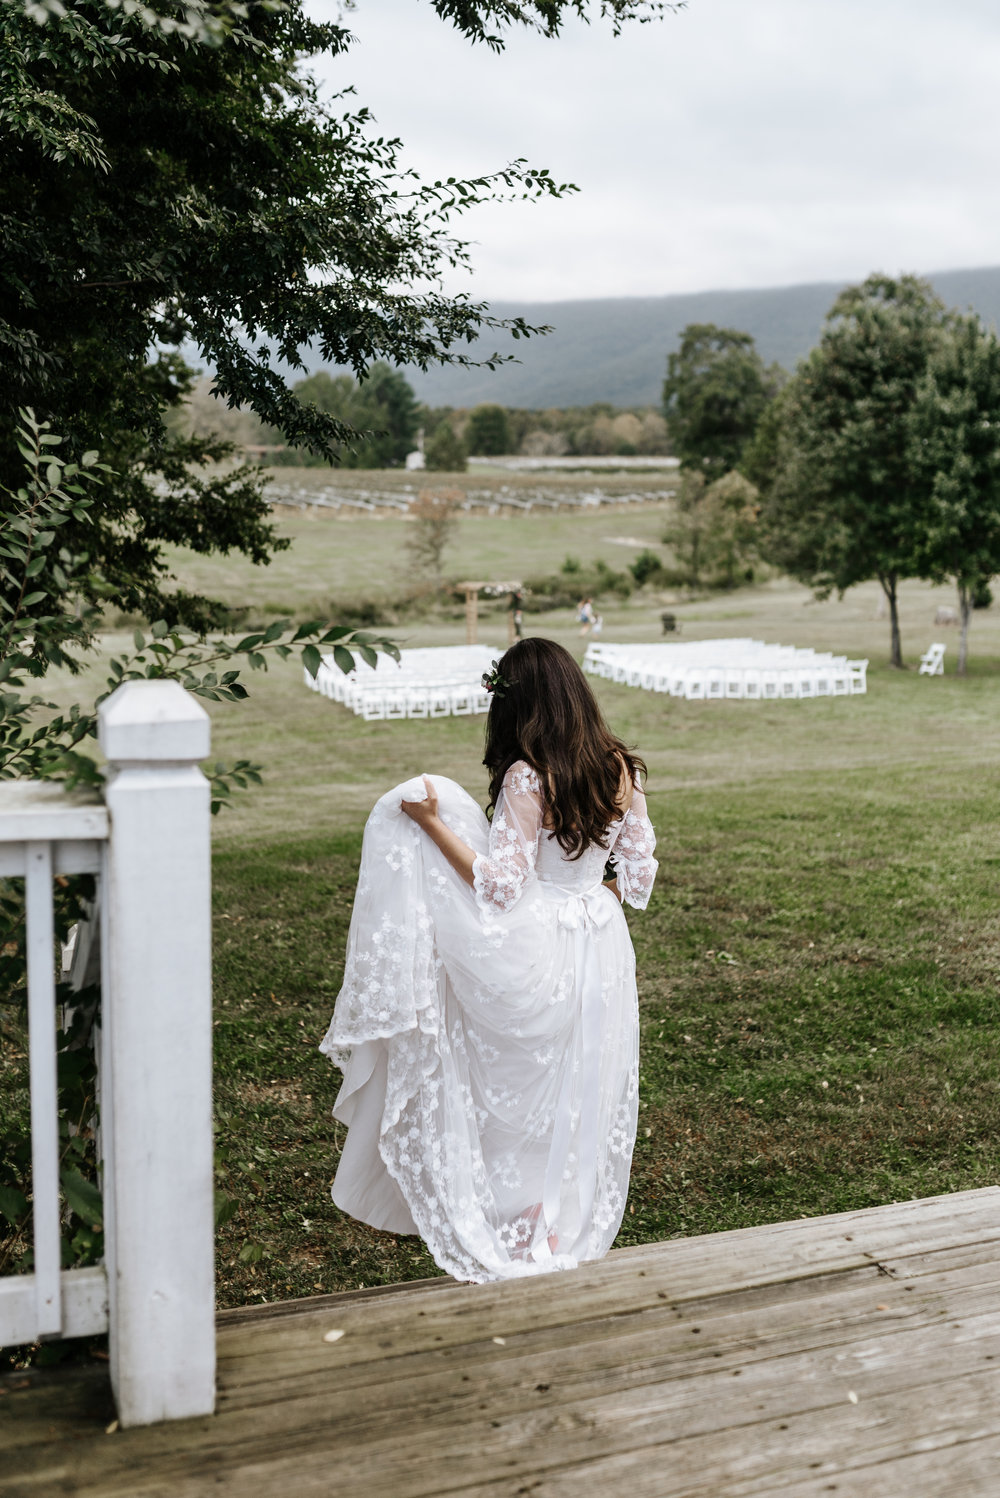 Veritas-Vineyards-and-Winery-Wedding-Photography-Afton-Virginia-Yasmin-Seth-Photography-by-V-9233.jpg